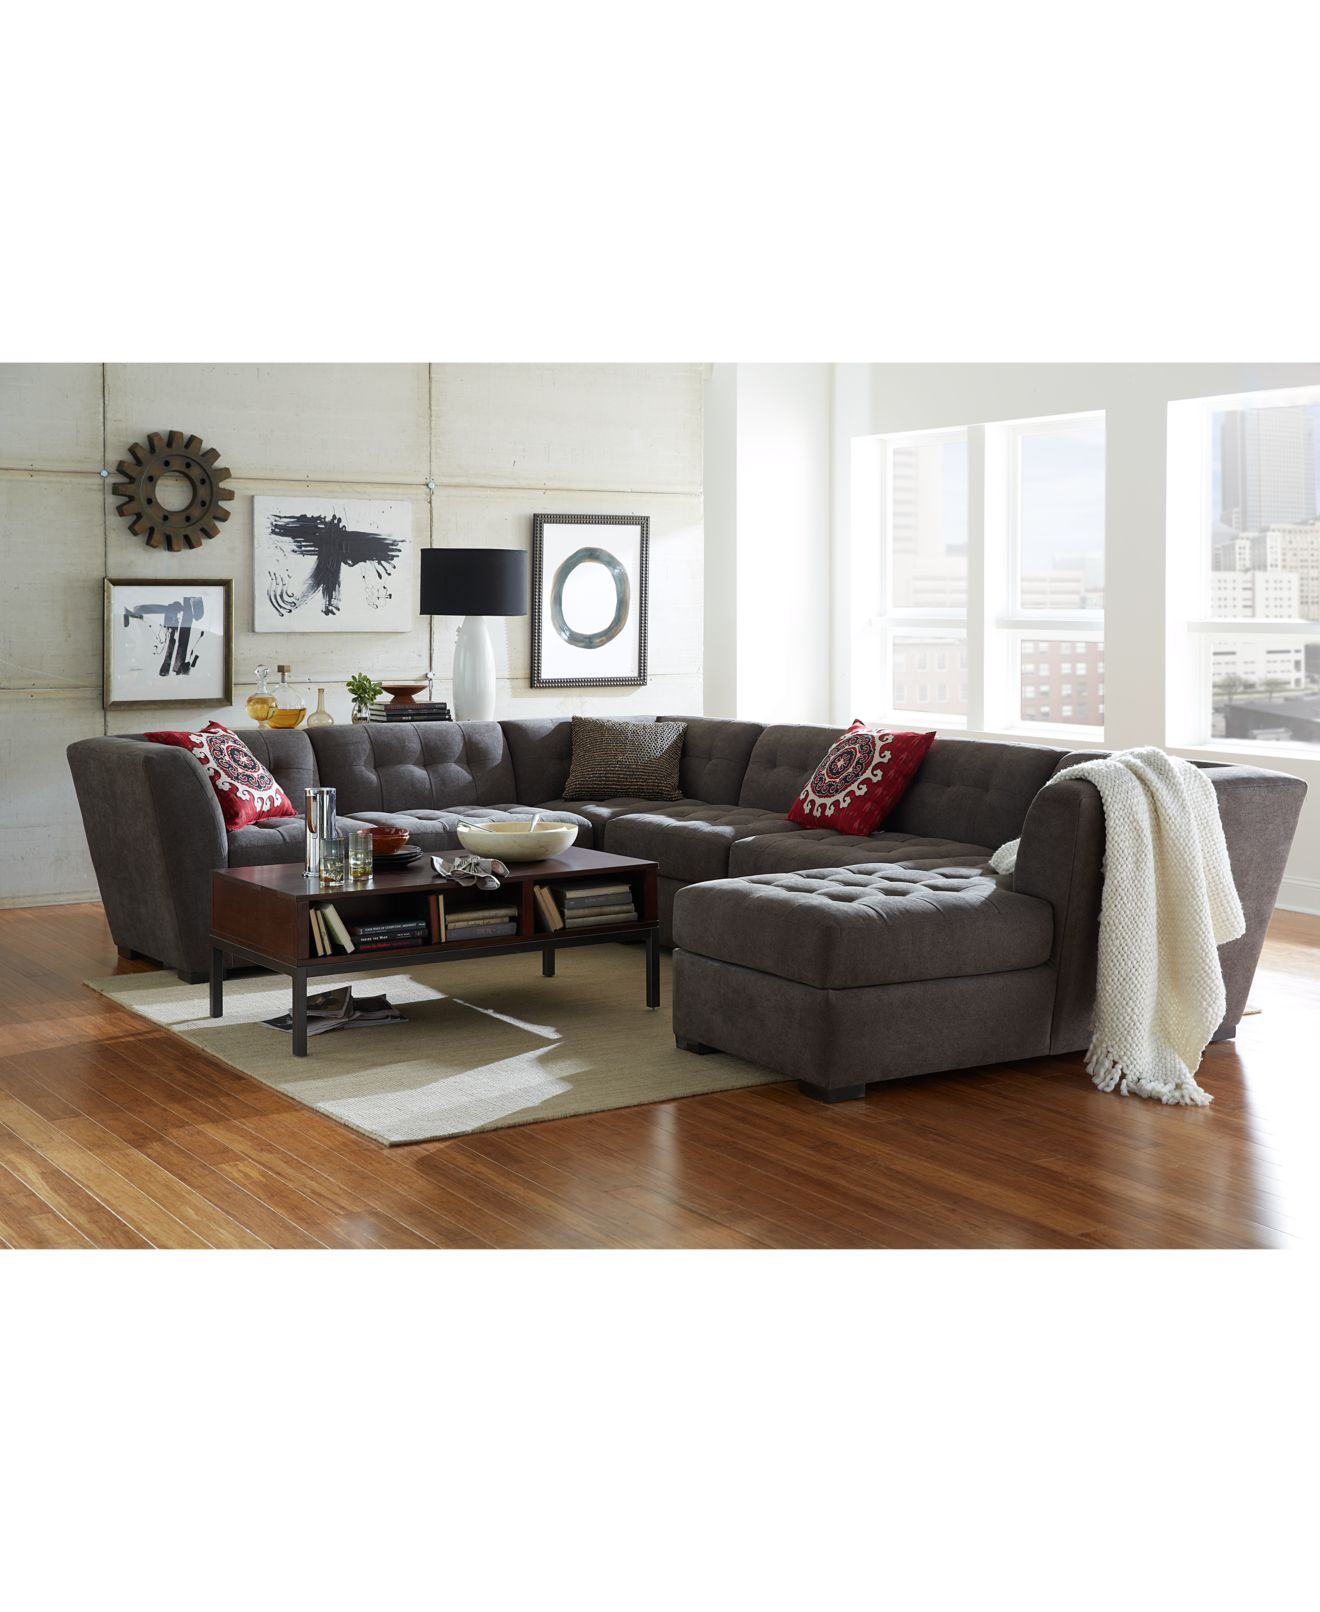 living room modular furniture modular living room furniture 16969